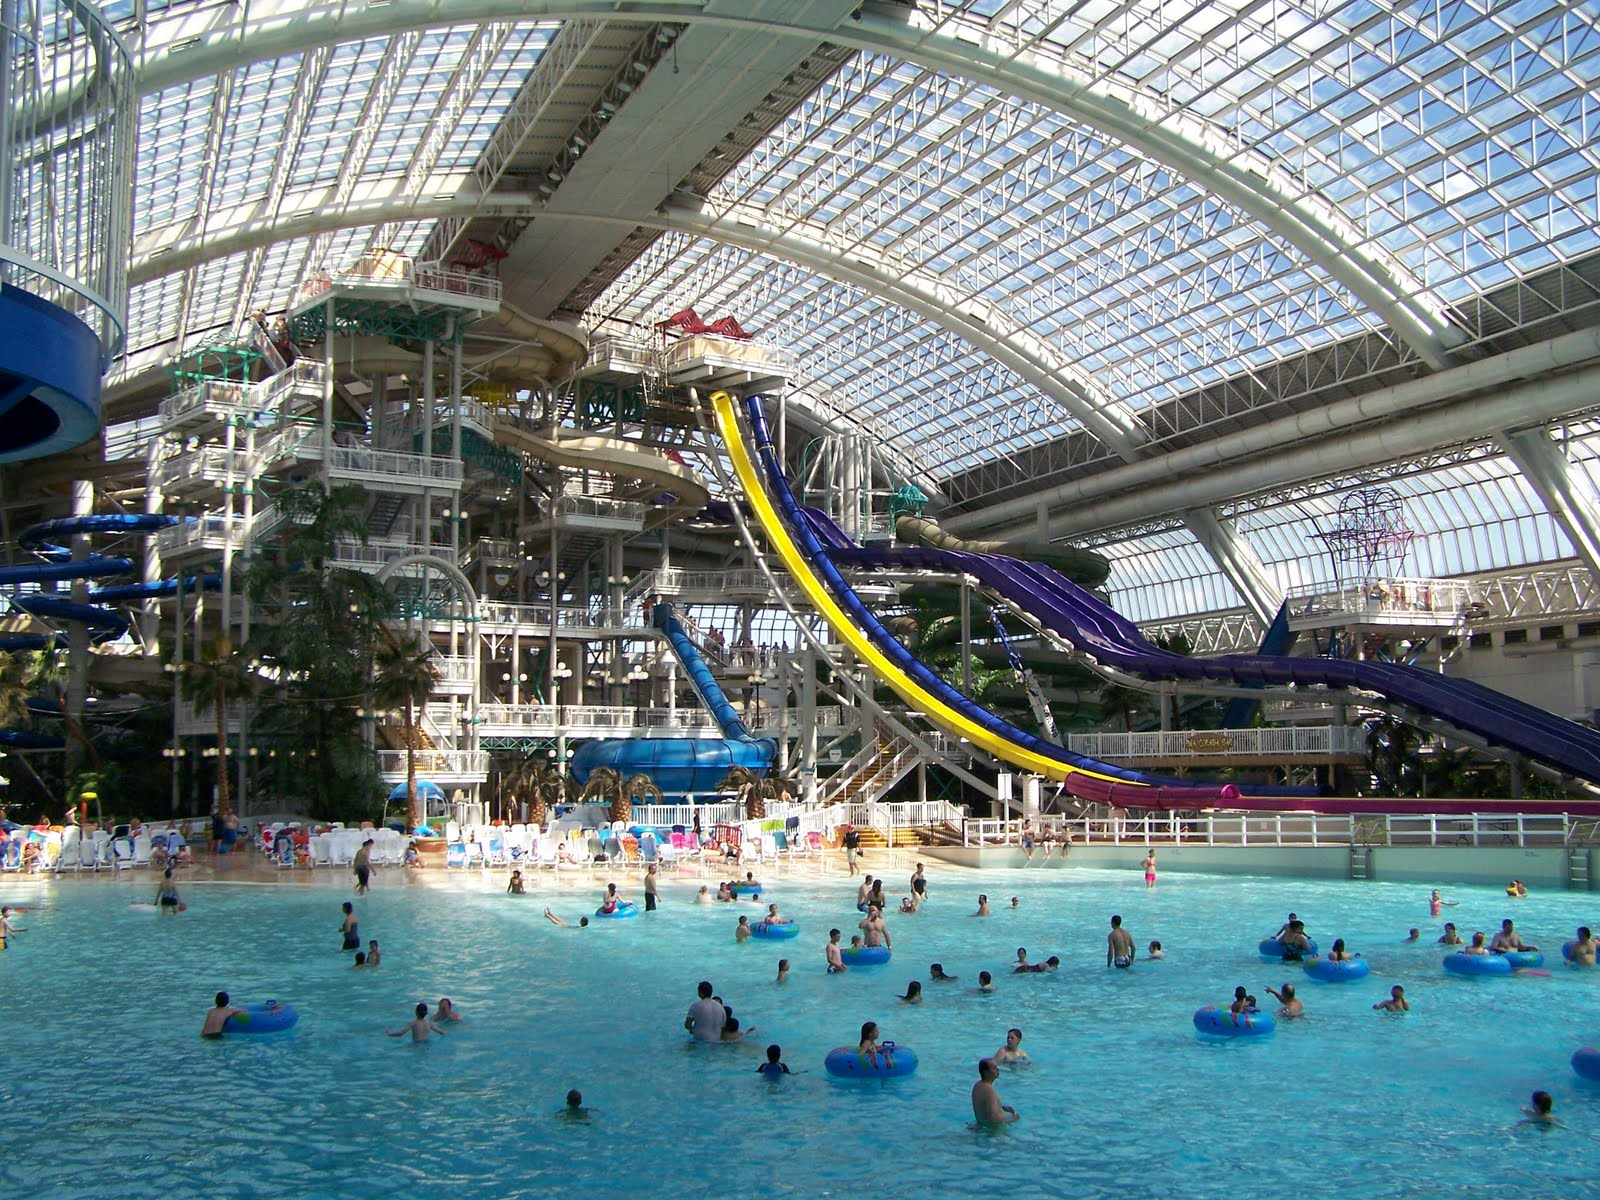 ... Swimming Pool 2 300x225 World's Largest Indoor Swimming Pool 2